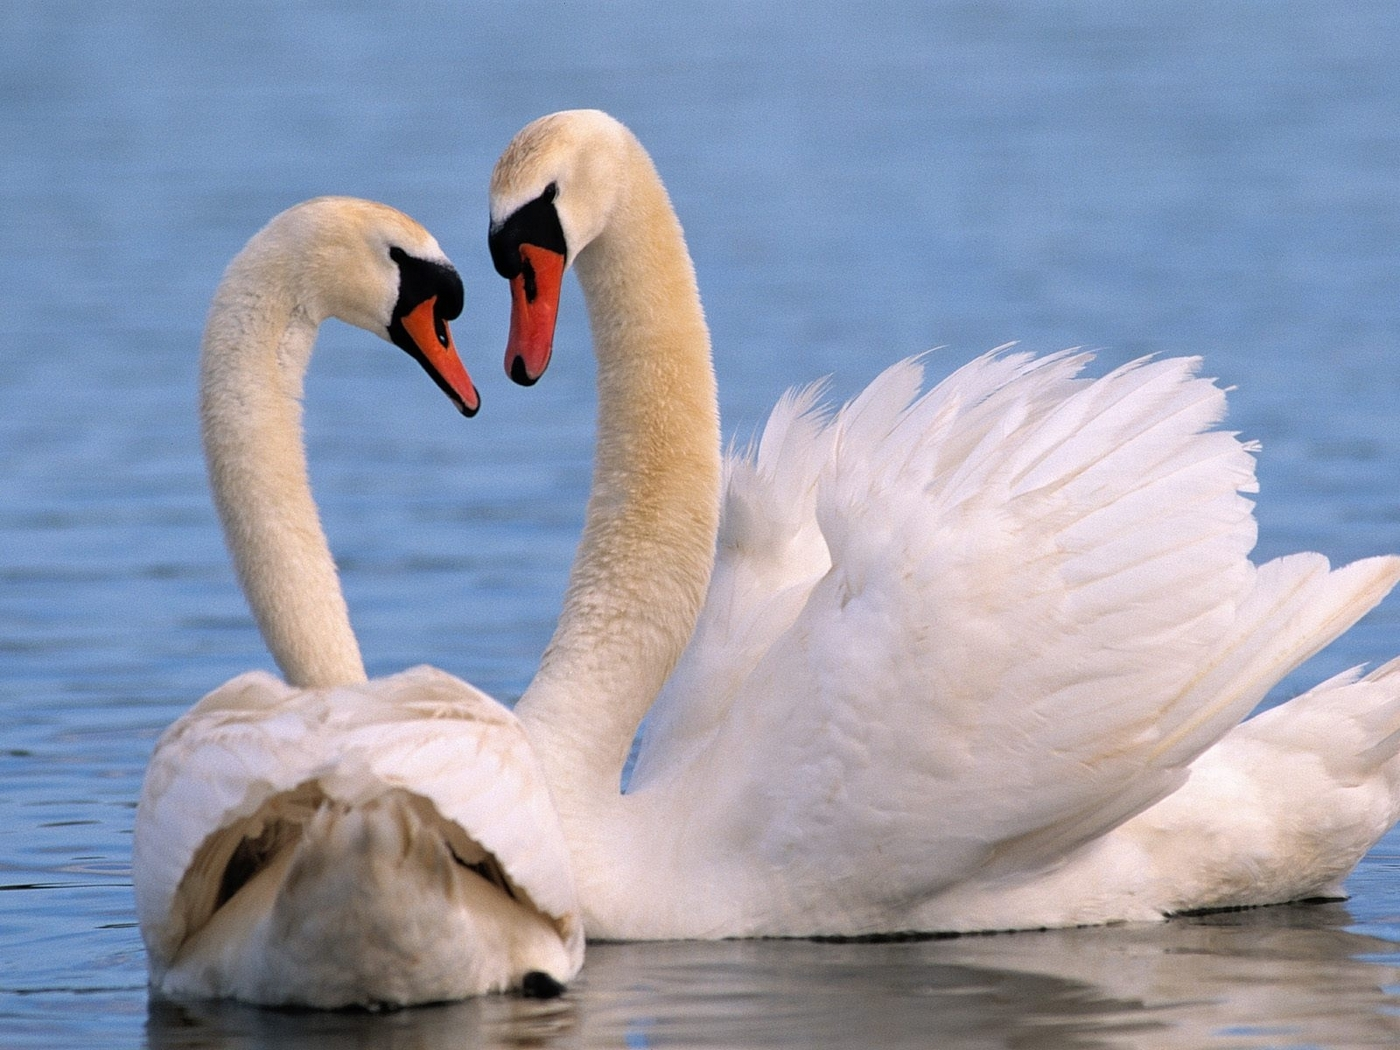 46164 download wallpaper Animals, Birds, Swans screensavers and pictures for free